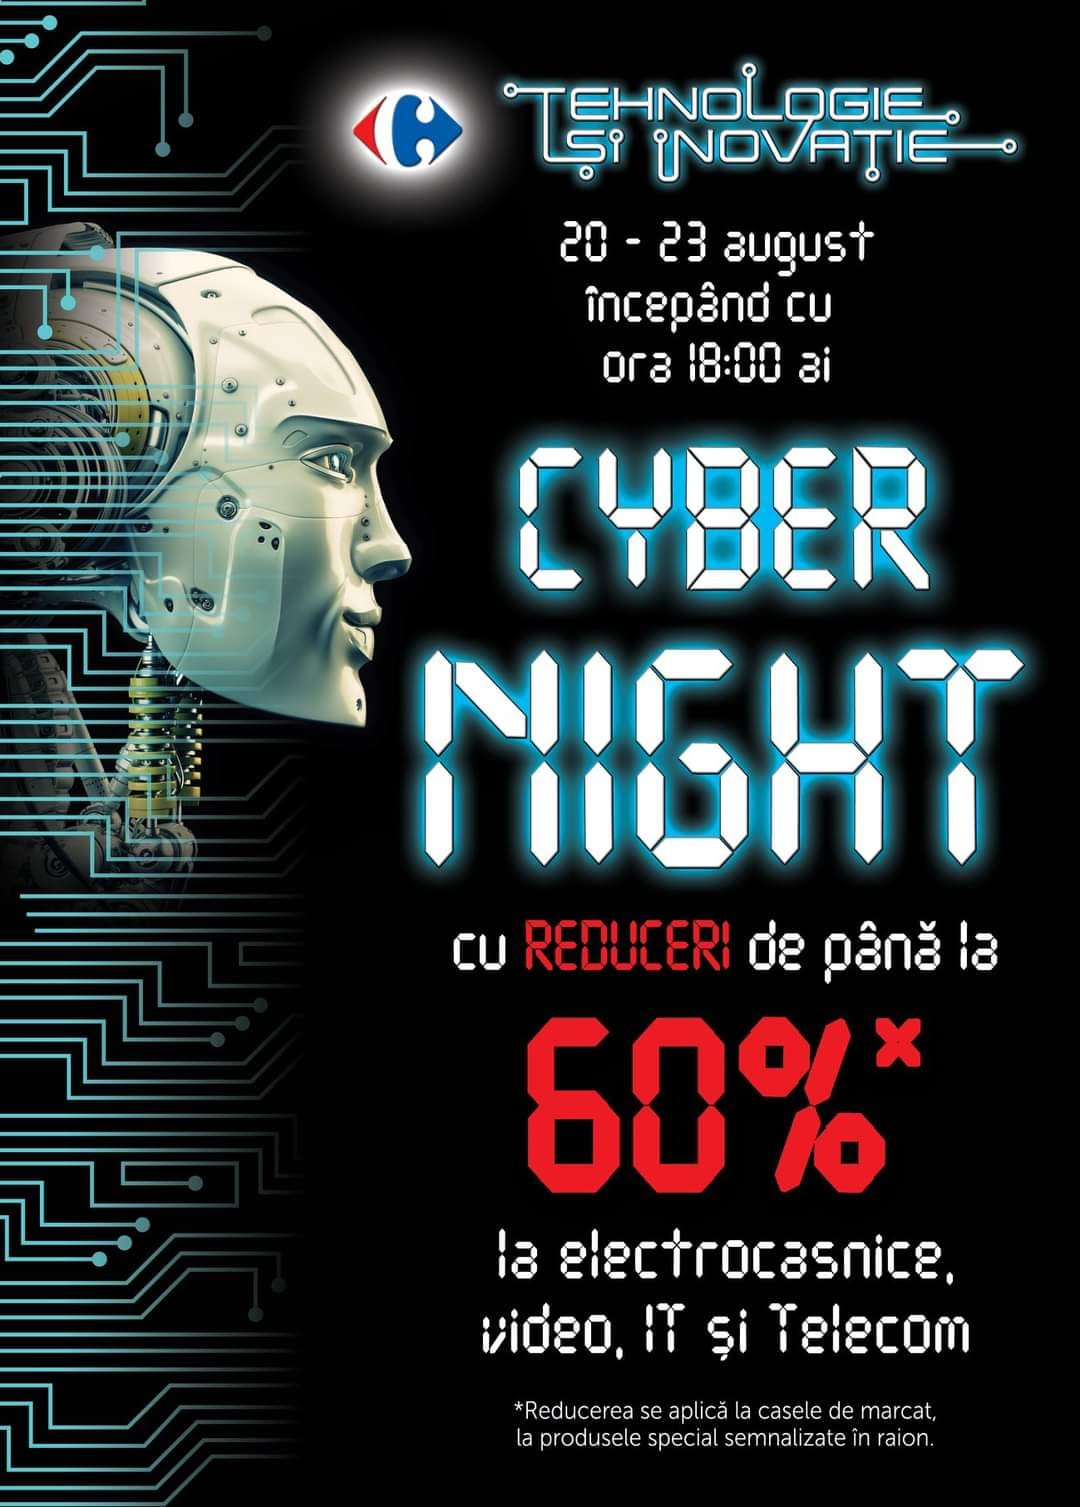 CARREFOUR: Cyber-Night!